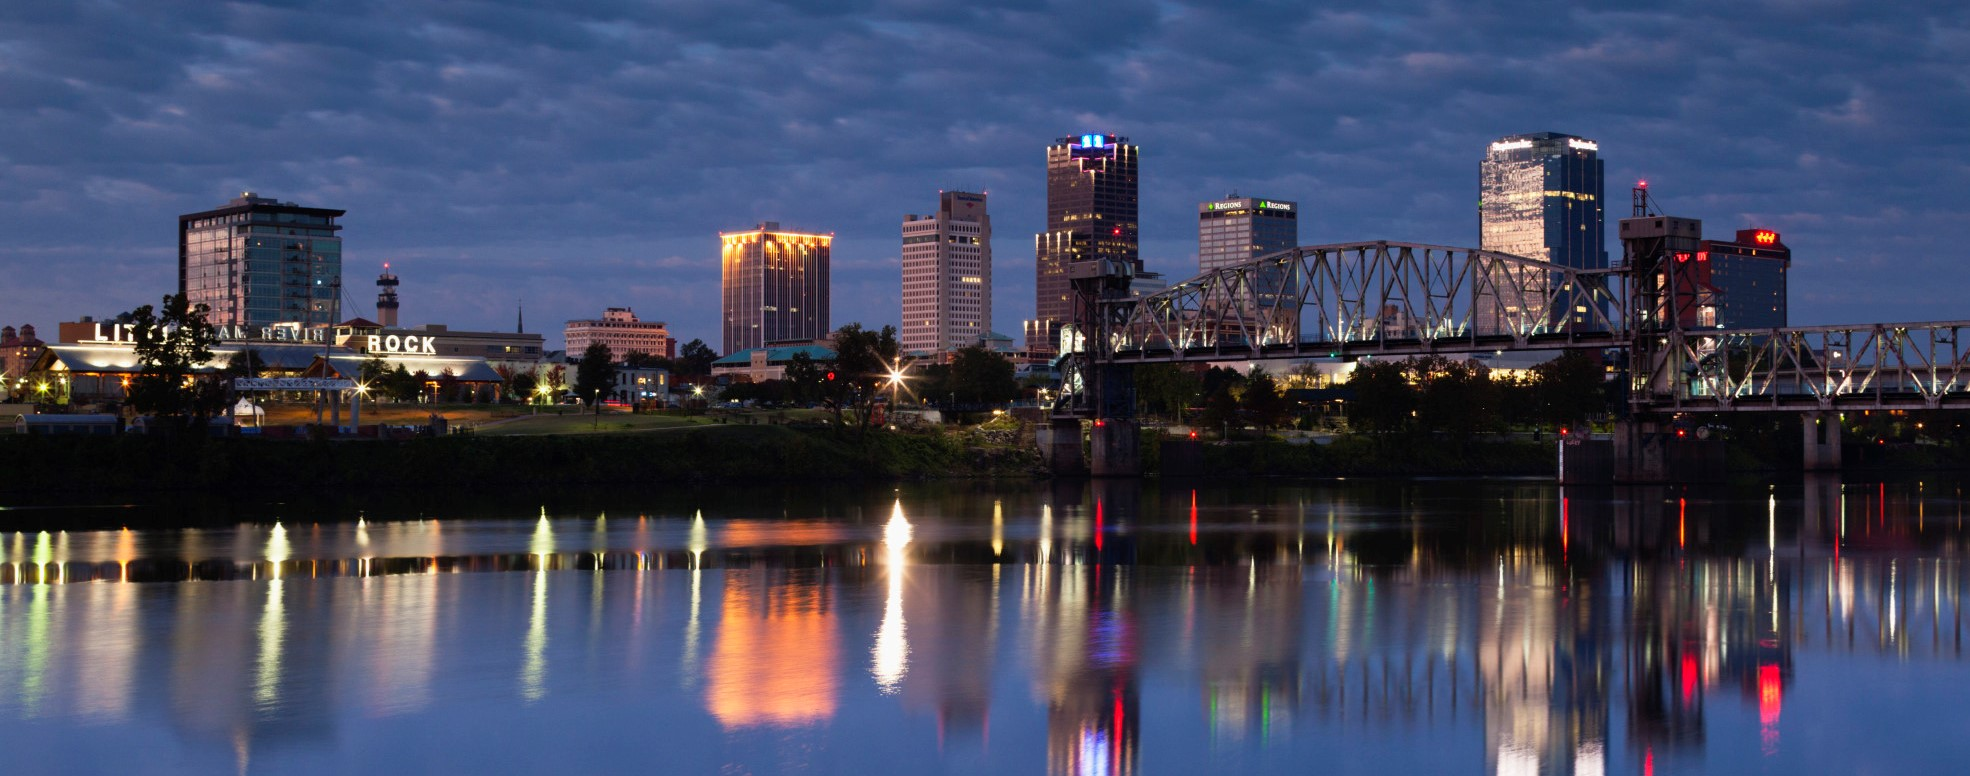 Little Rock, AR